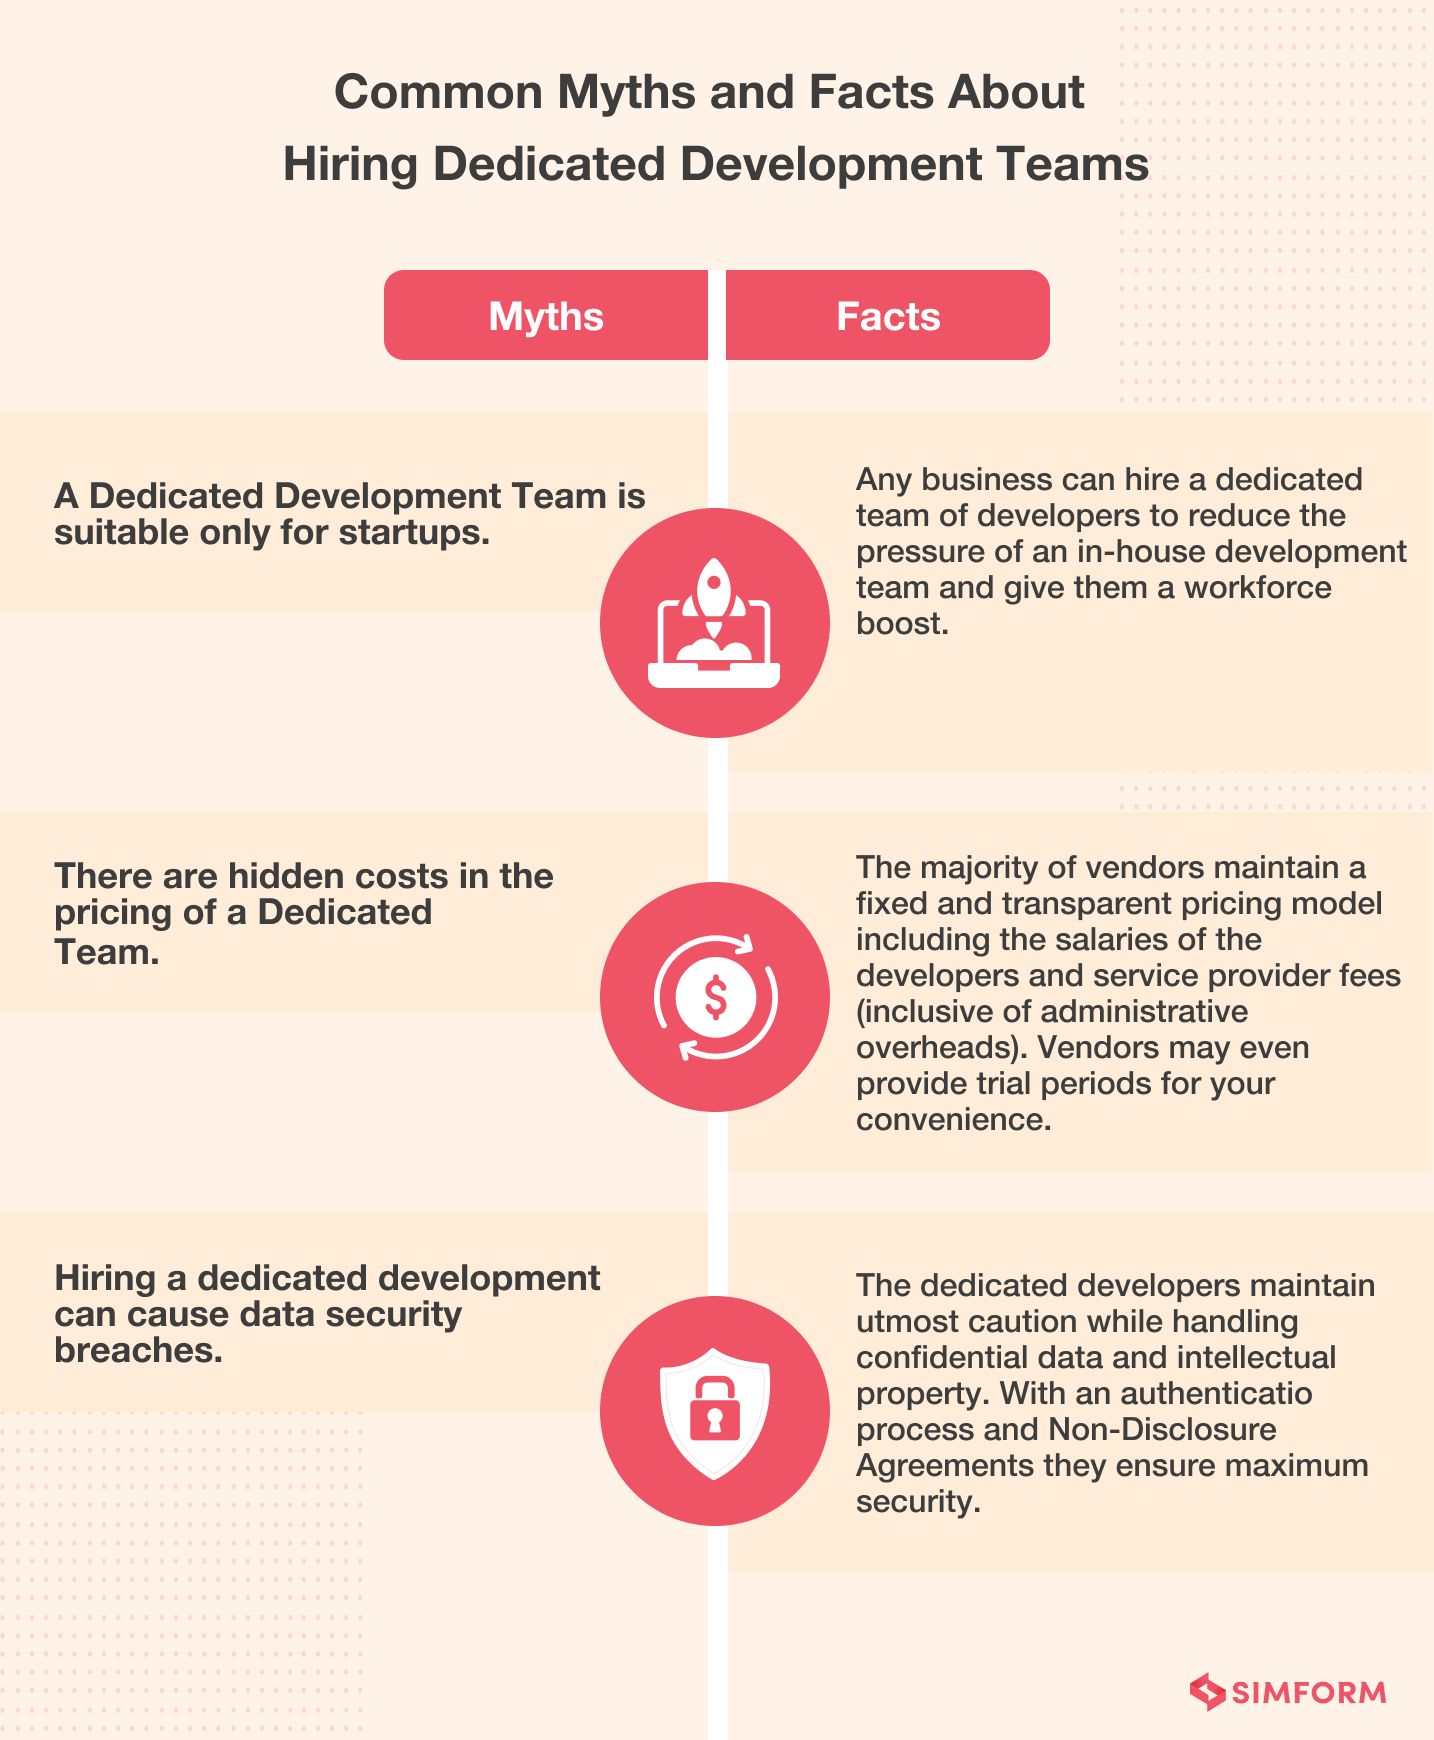 Common myths and facts of dedicated development team